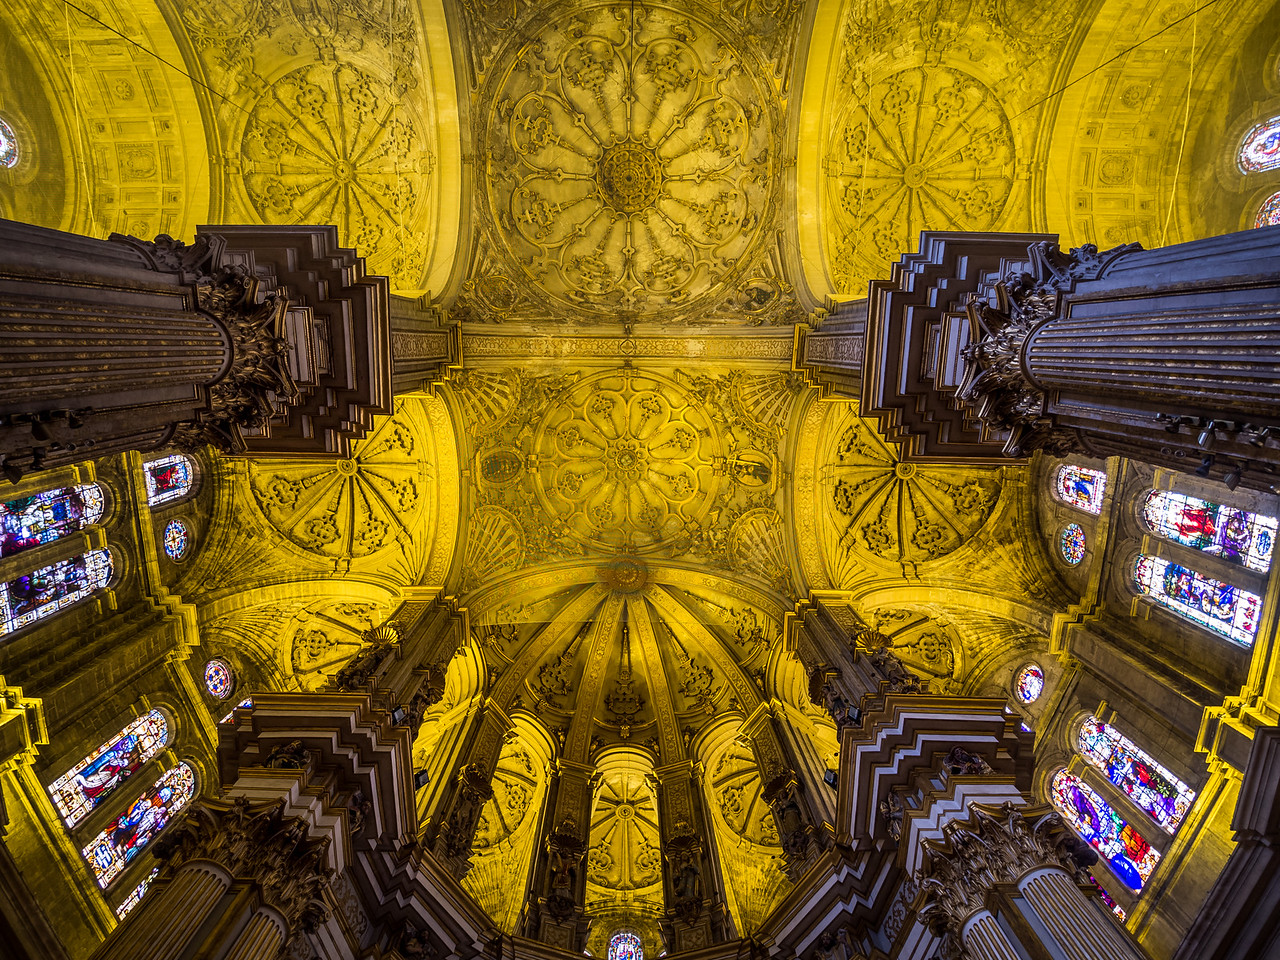 Ornate Ceiling of Málaga Cathedral, Spain